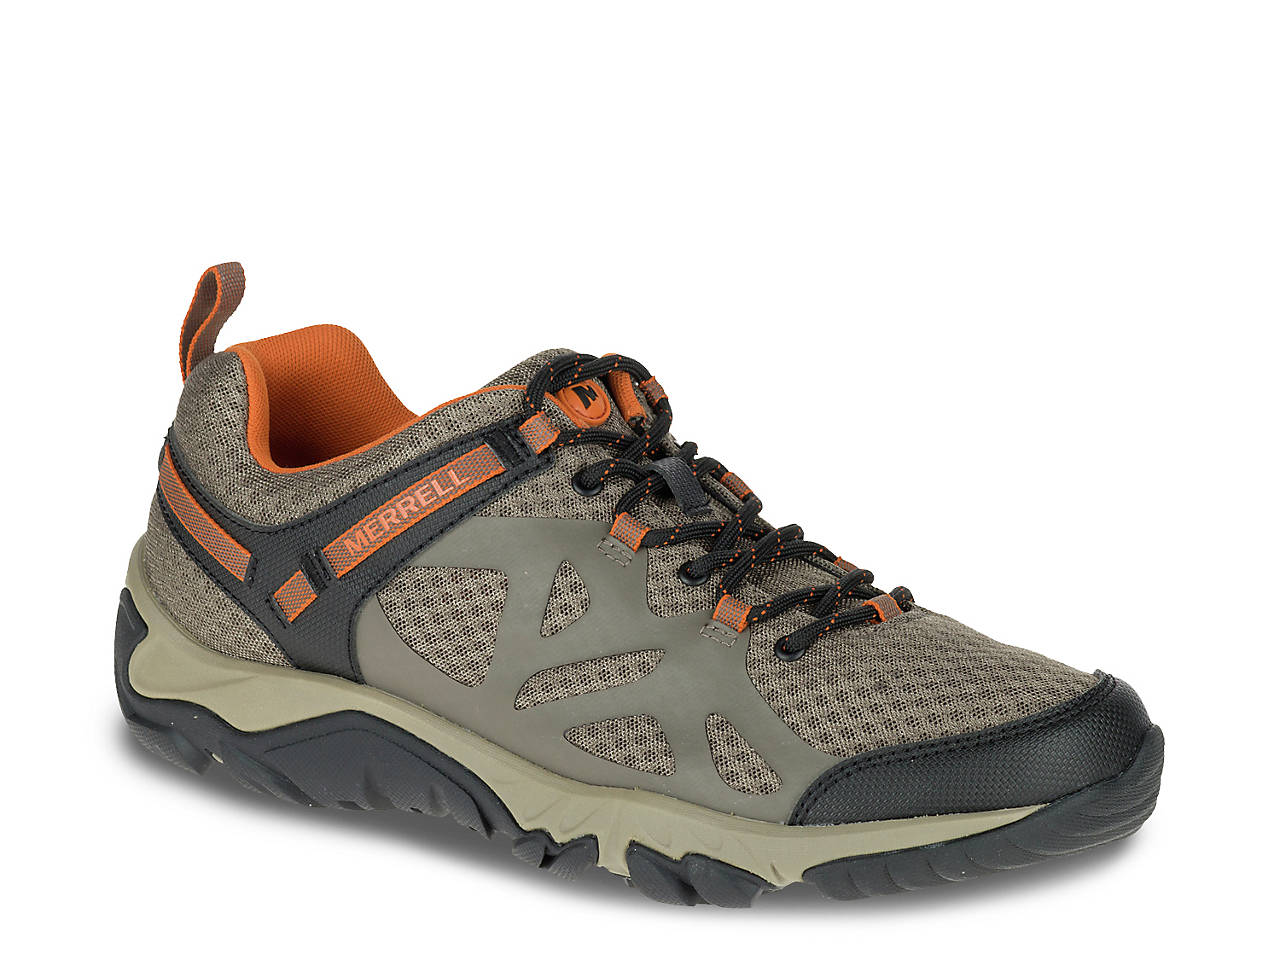 Men's Outright Edge Mid Waterproof Hiking Boot